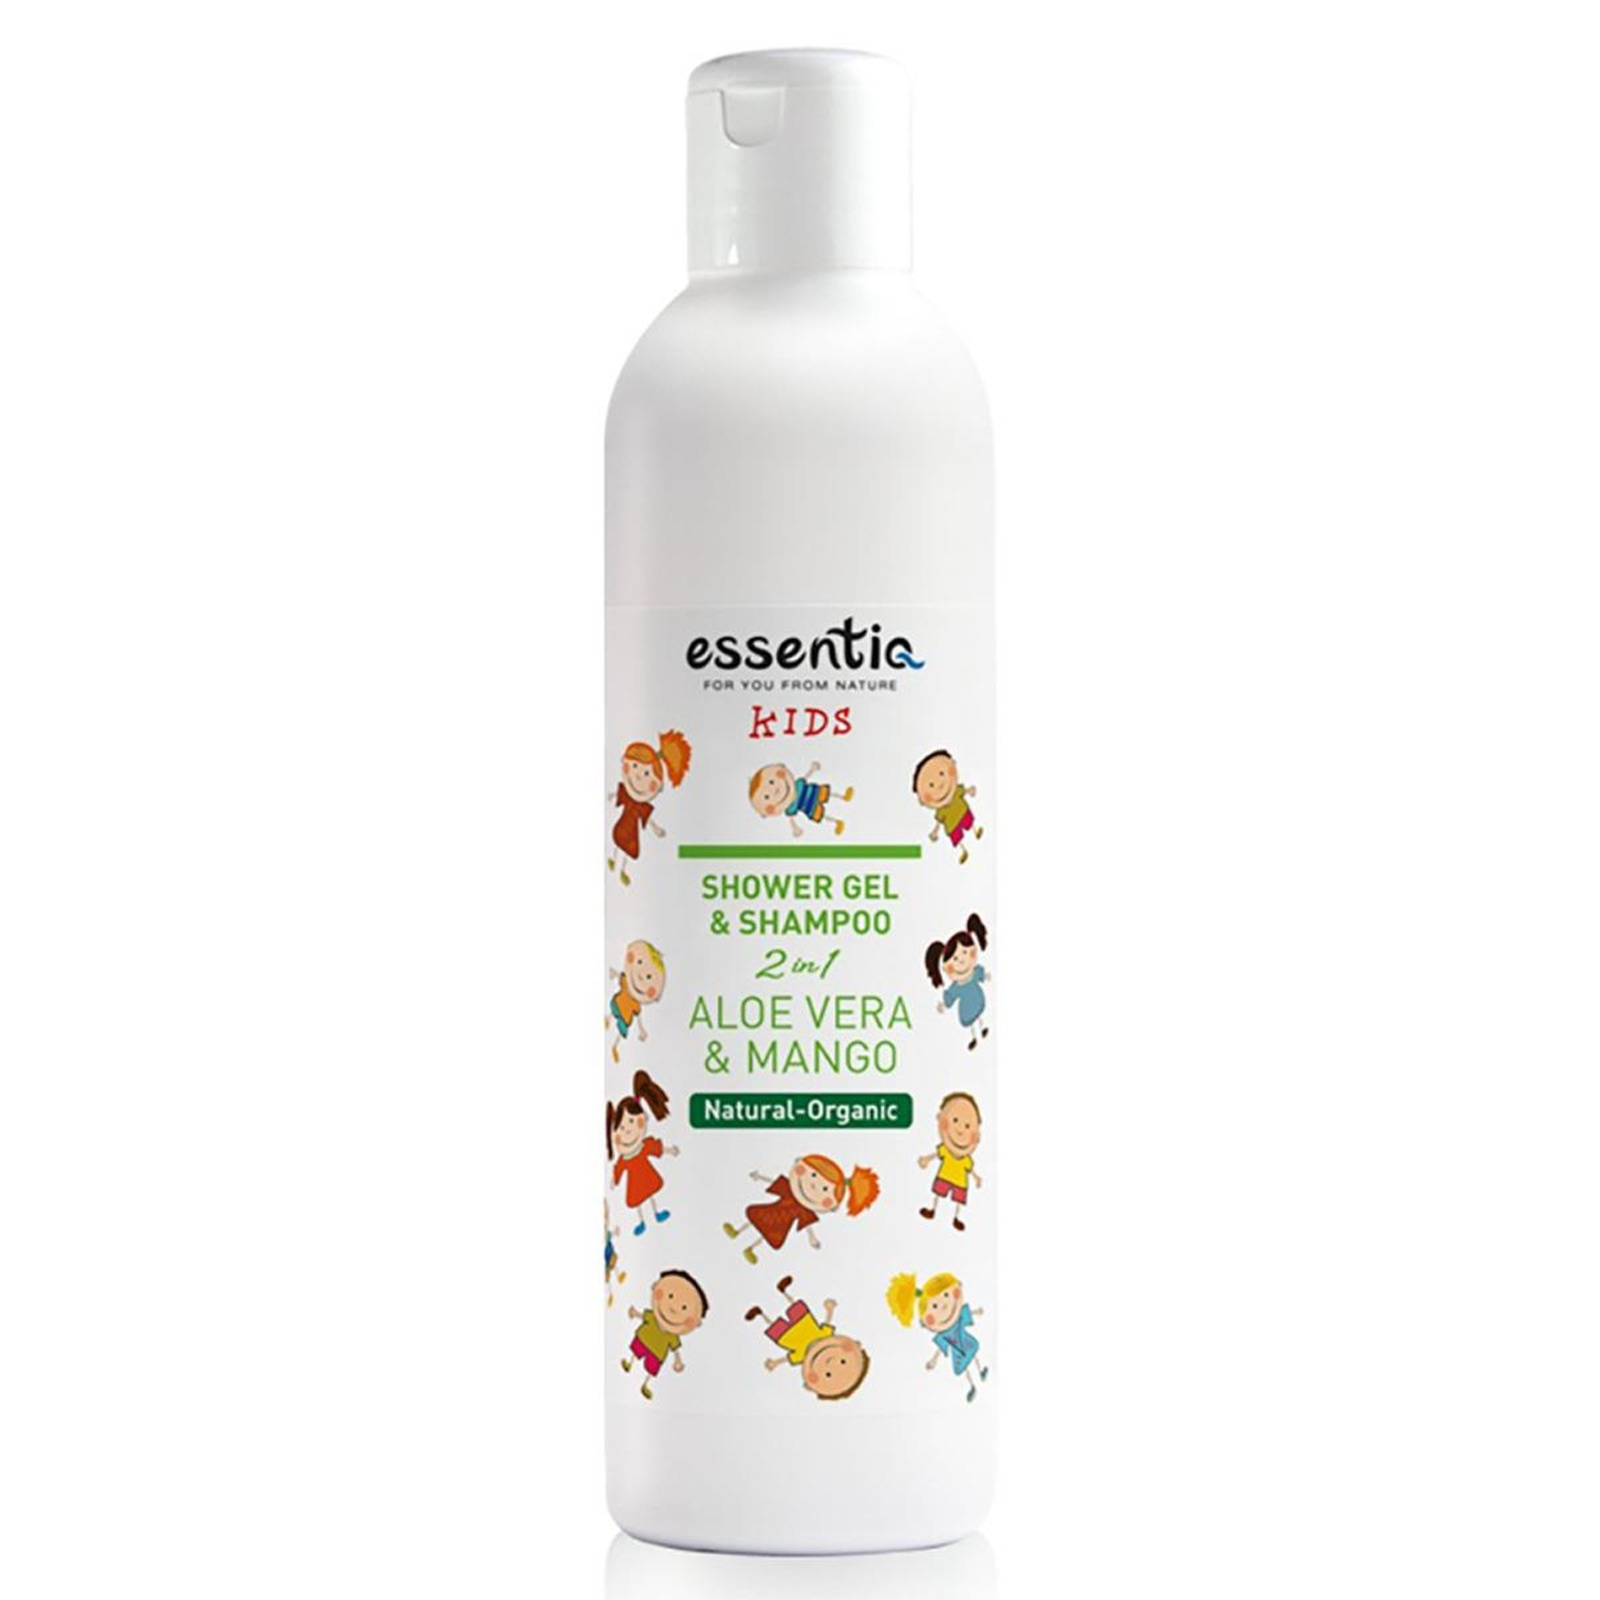 Essentiq Shower Gel and Shampoo Kids 2 in 1 Aloe Vera & Mango